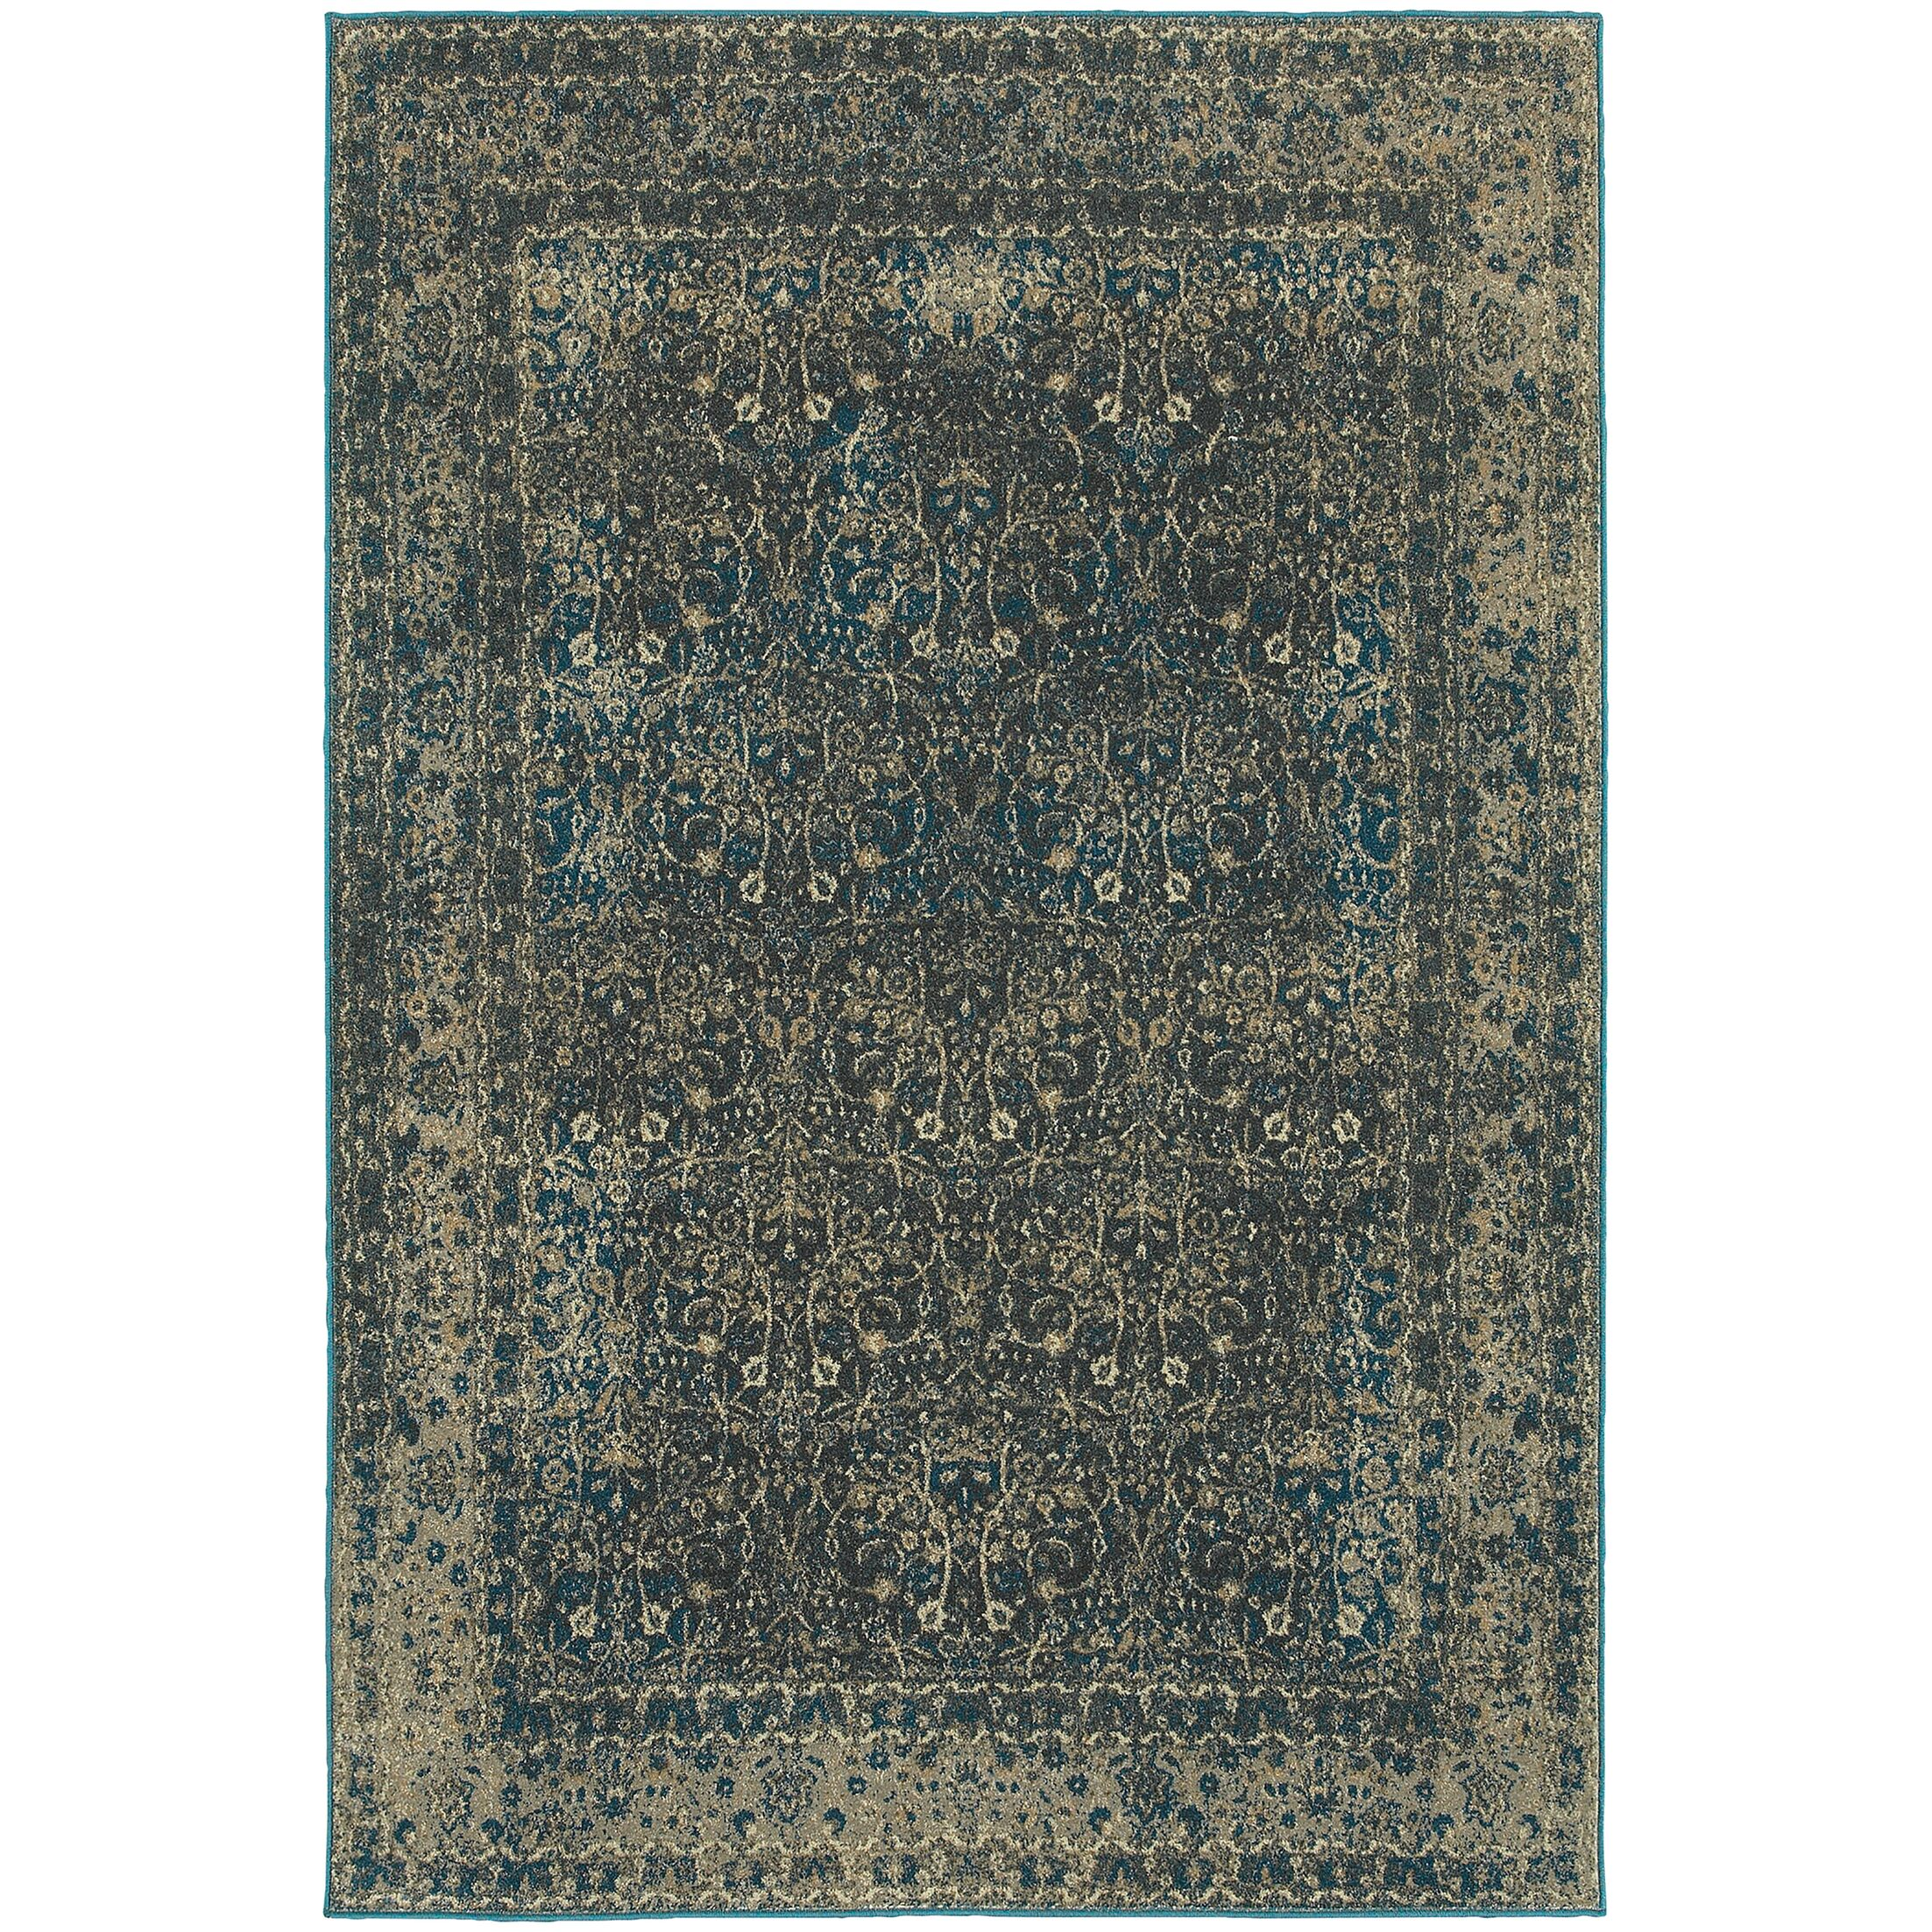 Pheonix Navy/Gray Area Rug Rug Size: Rectangle 7'10